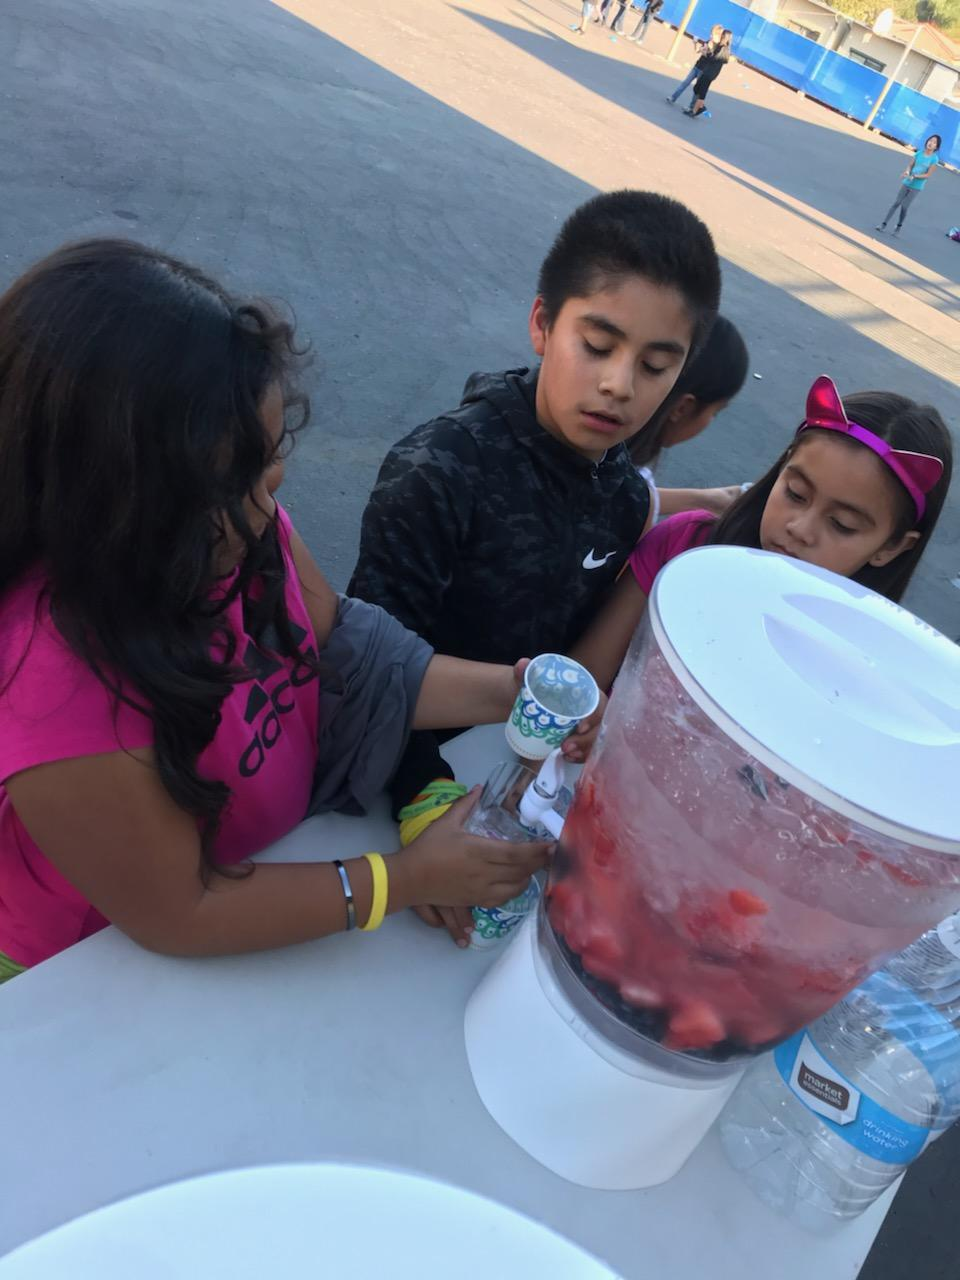 girl getting fruit-infused water from a dispenser